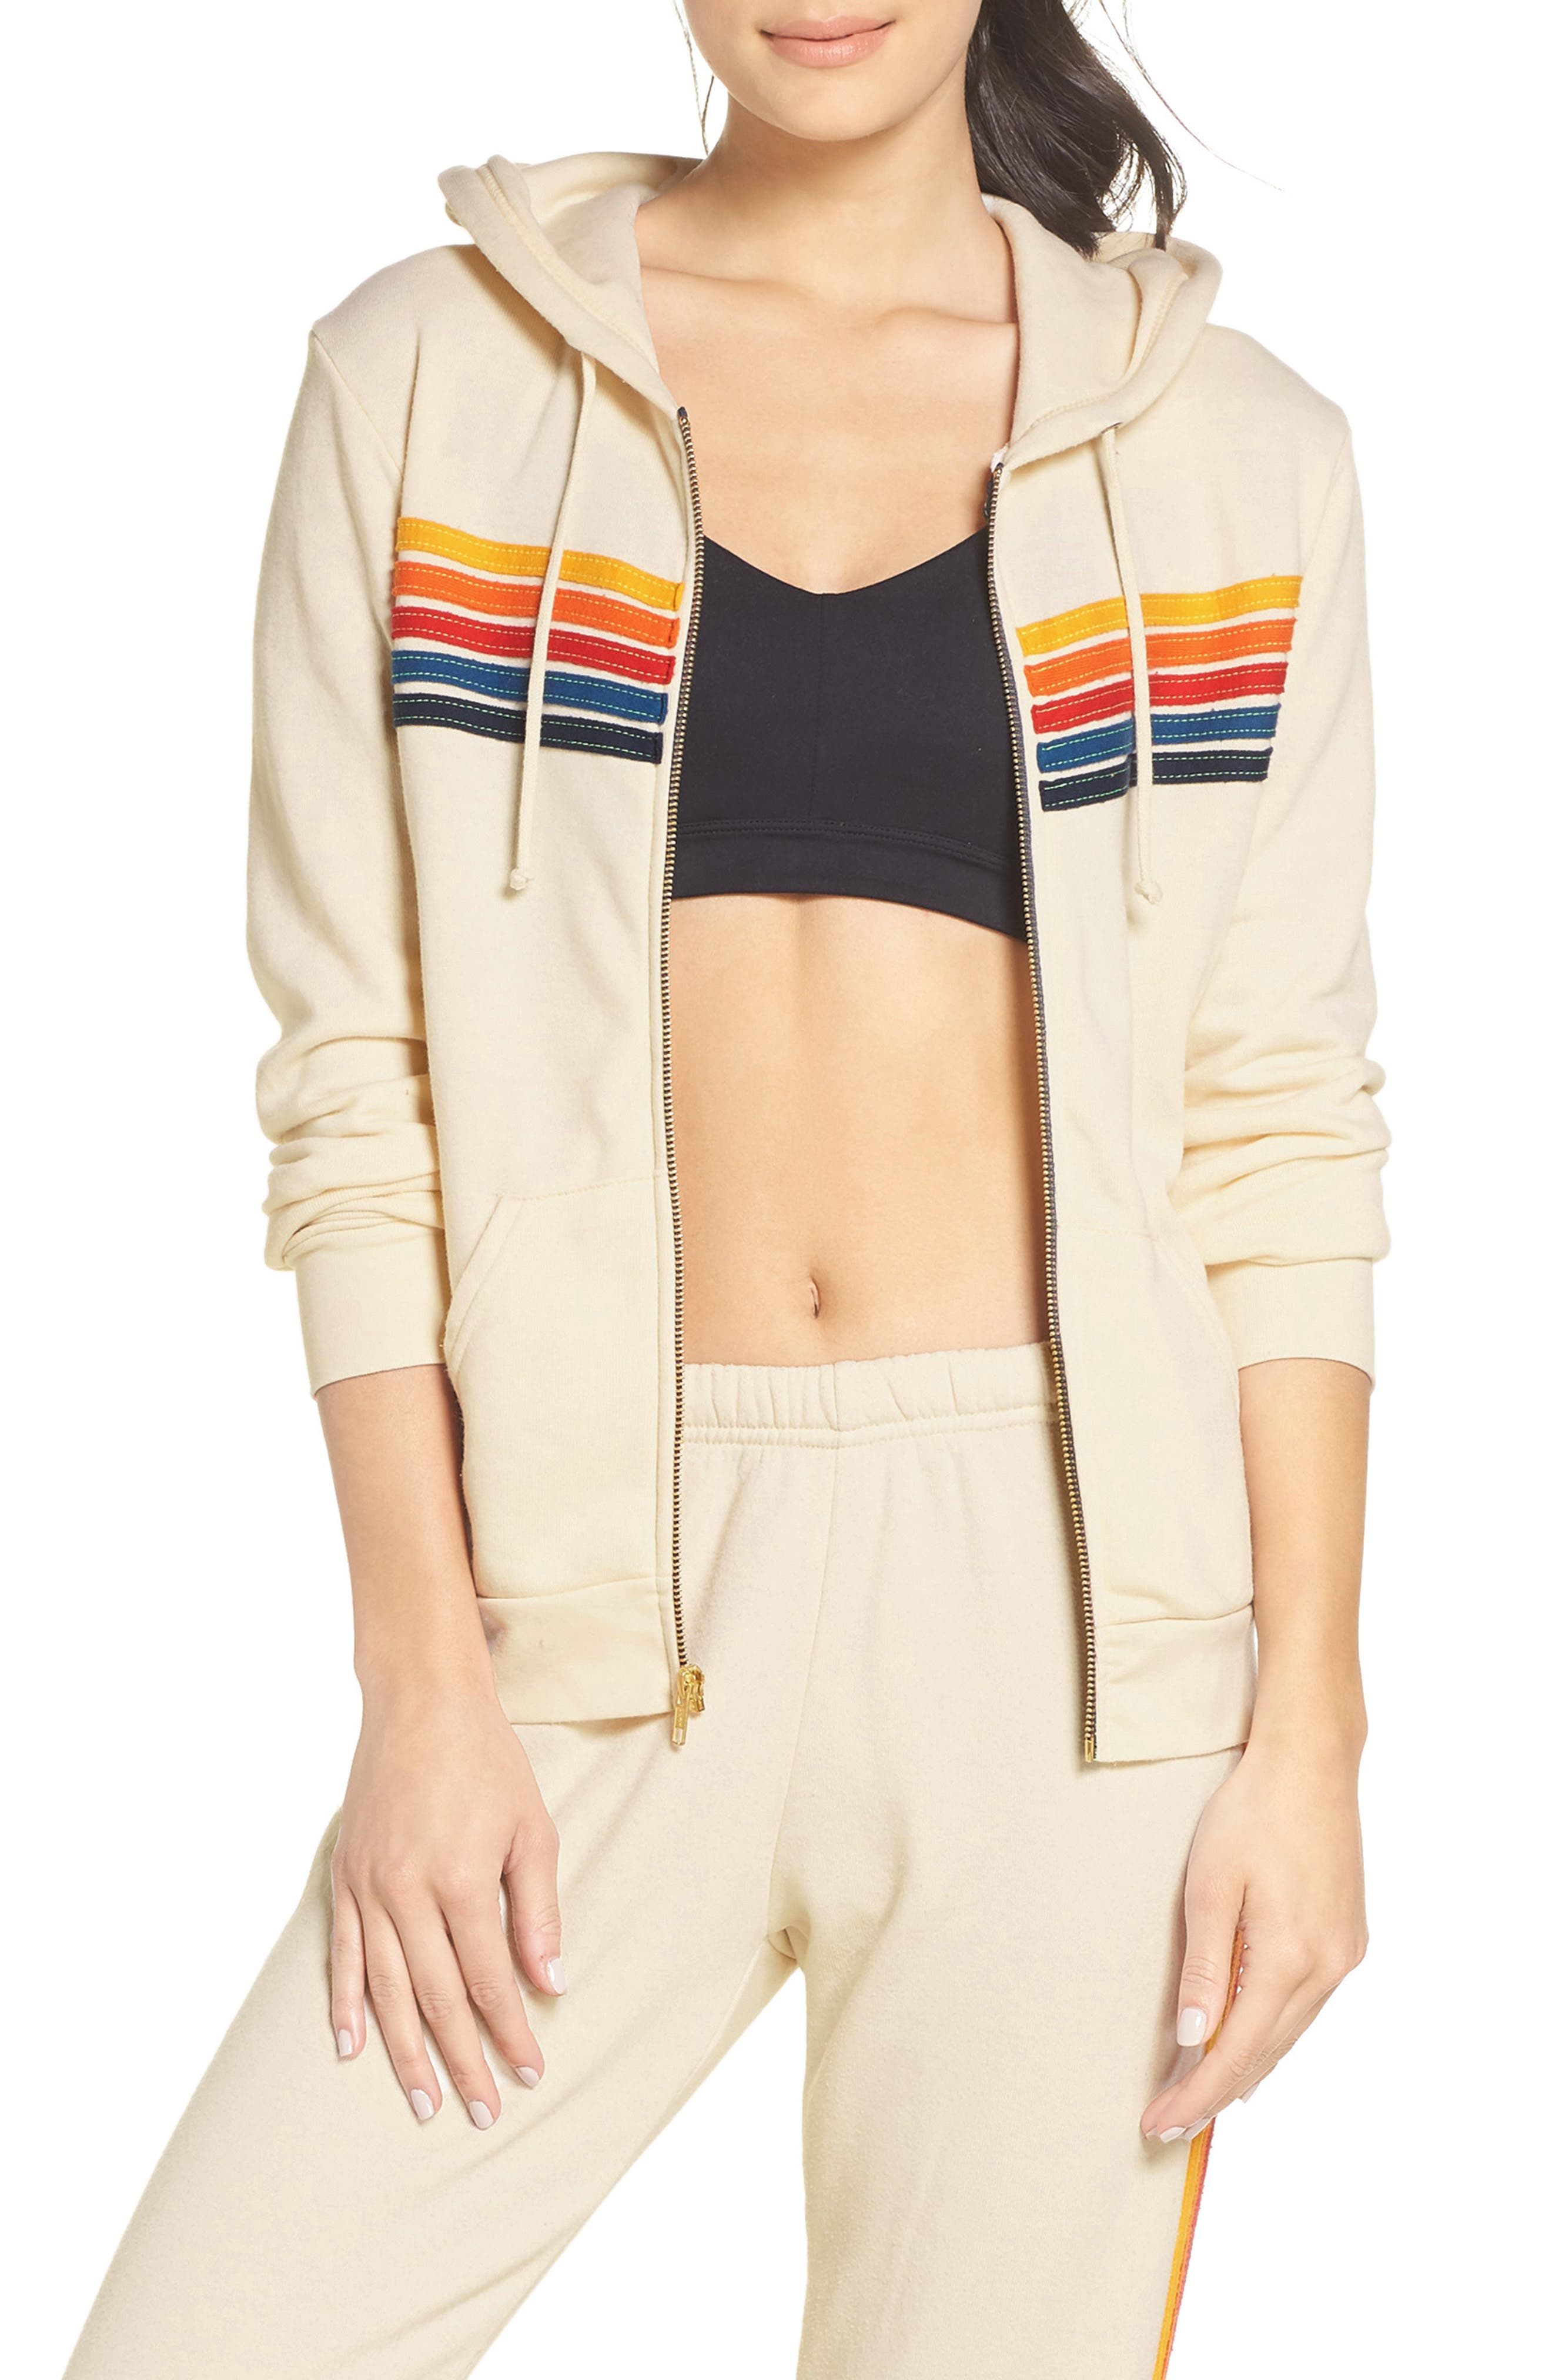 AVIATOR NATION, 5-Stripe Zip Hoodie, Main thumbnail 1, color, VINTAGE WHITE